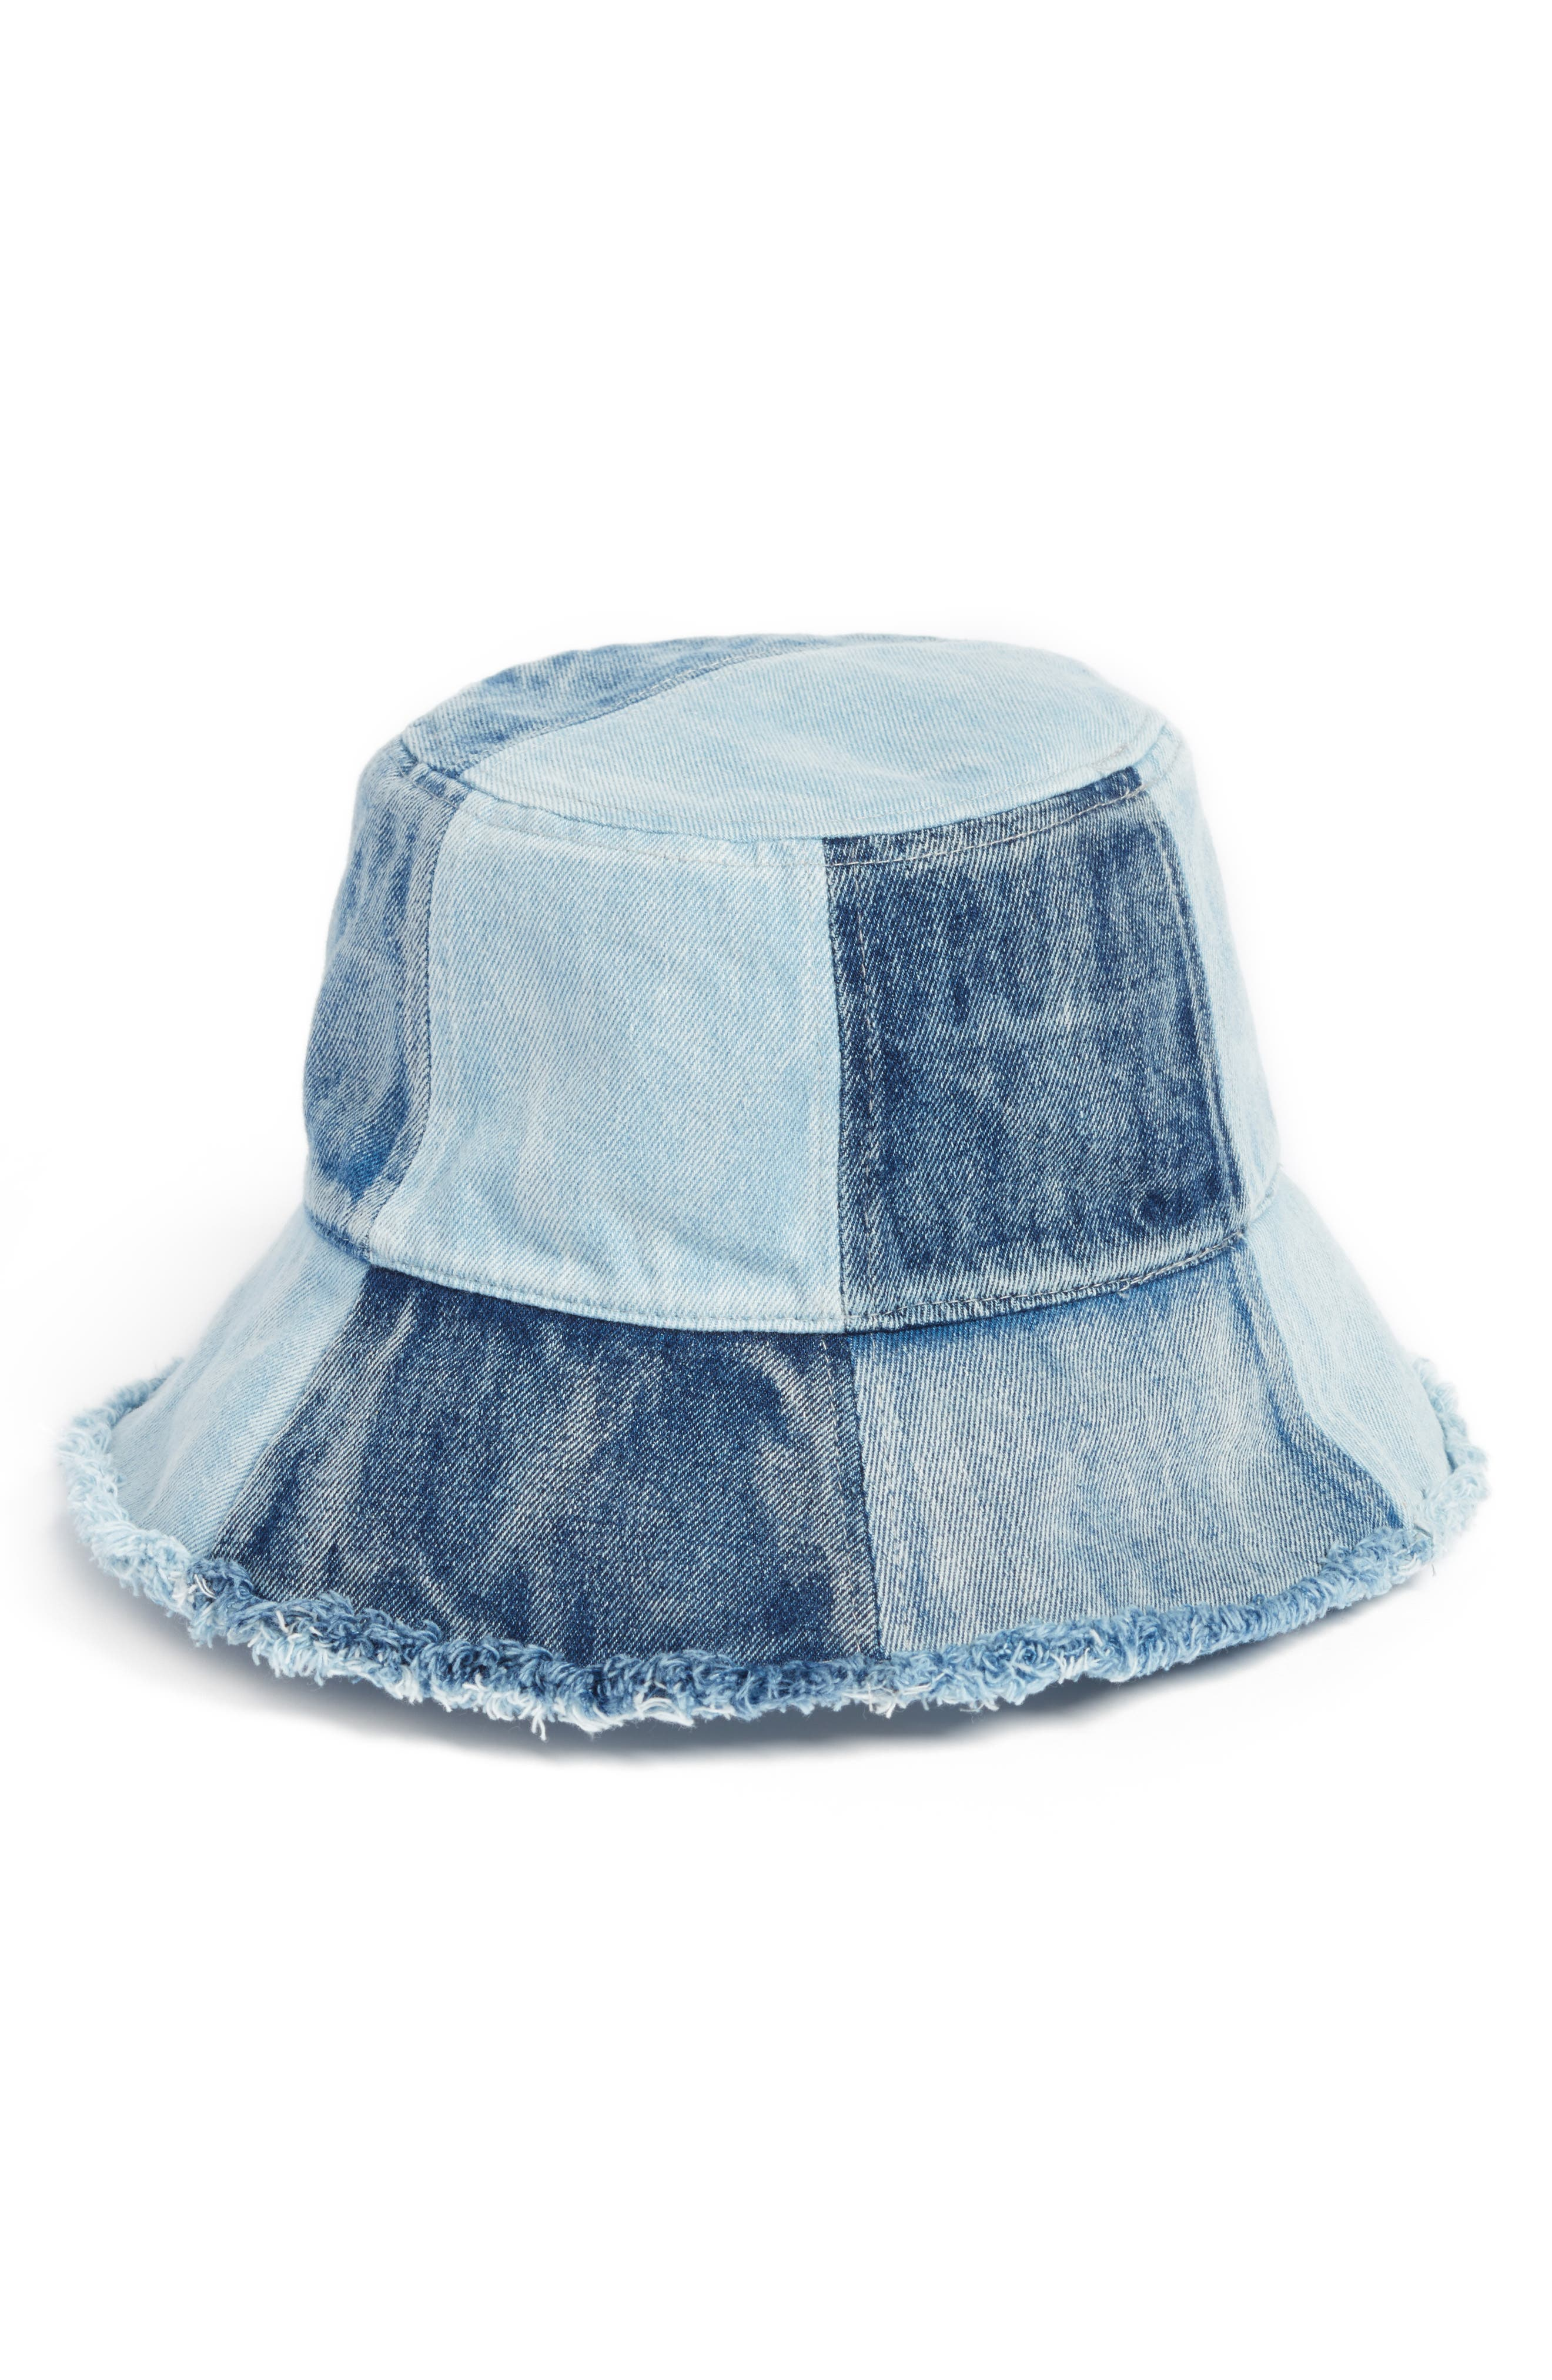 PATCHED DENIM BUCKET HAT - BLUE